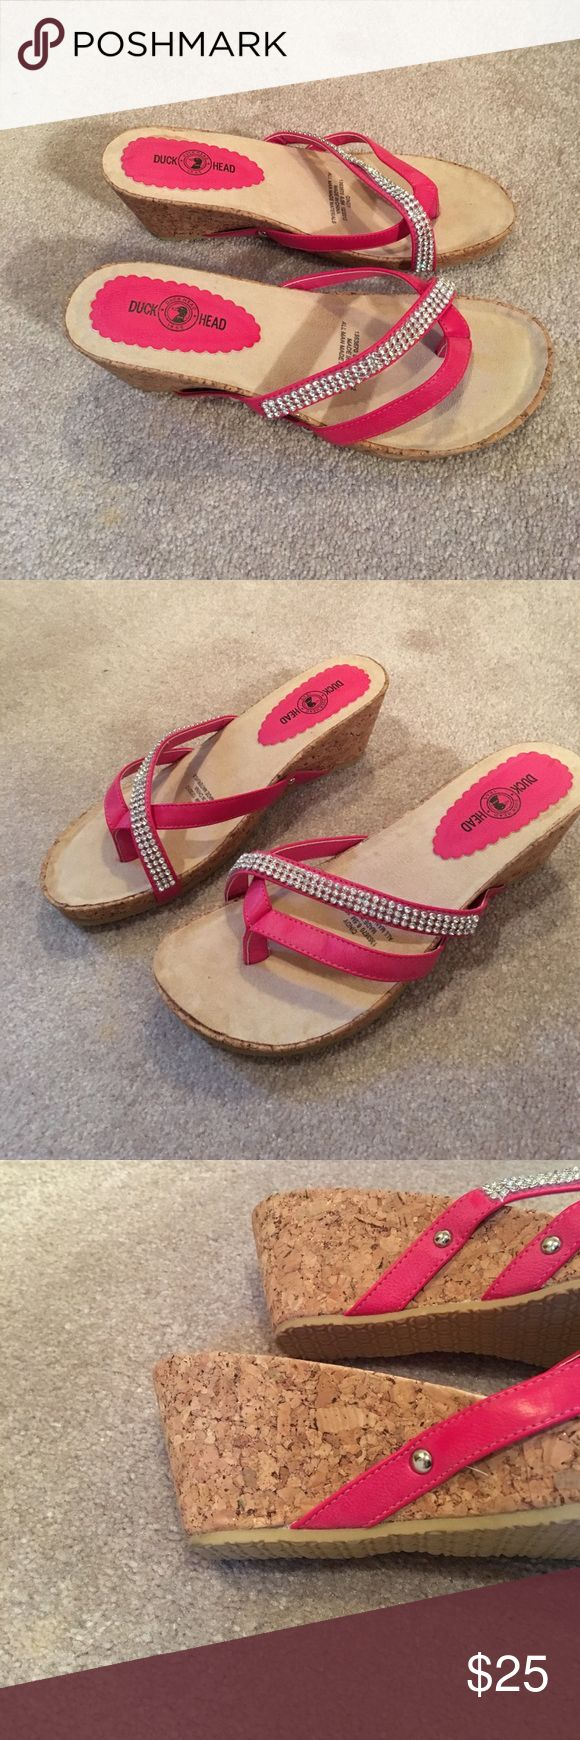 """NWOT Duckhead """"Cindy"""" sandal size 6.5 Hot pink/cork sandals, never worn, NWOT, glitter shimmers within the cork material also DuckHead Shoes Sandals"""